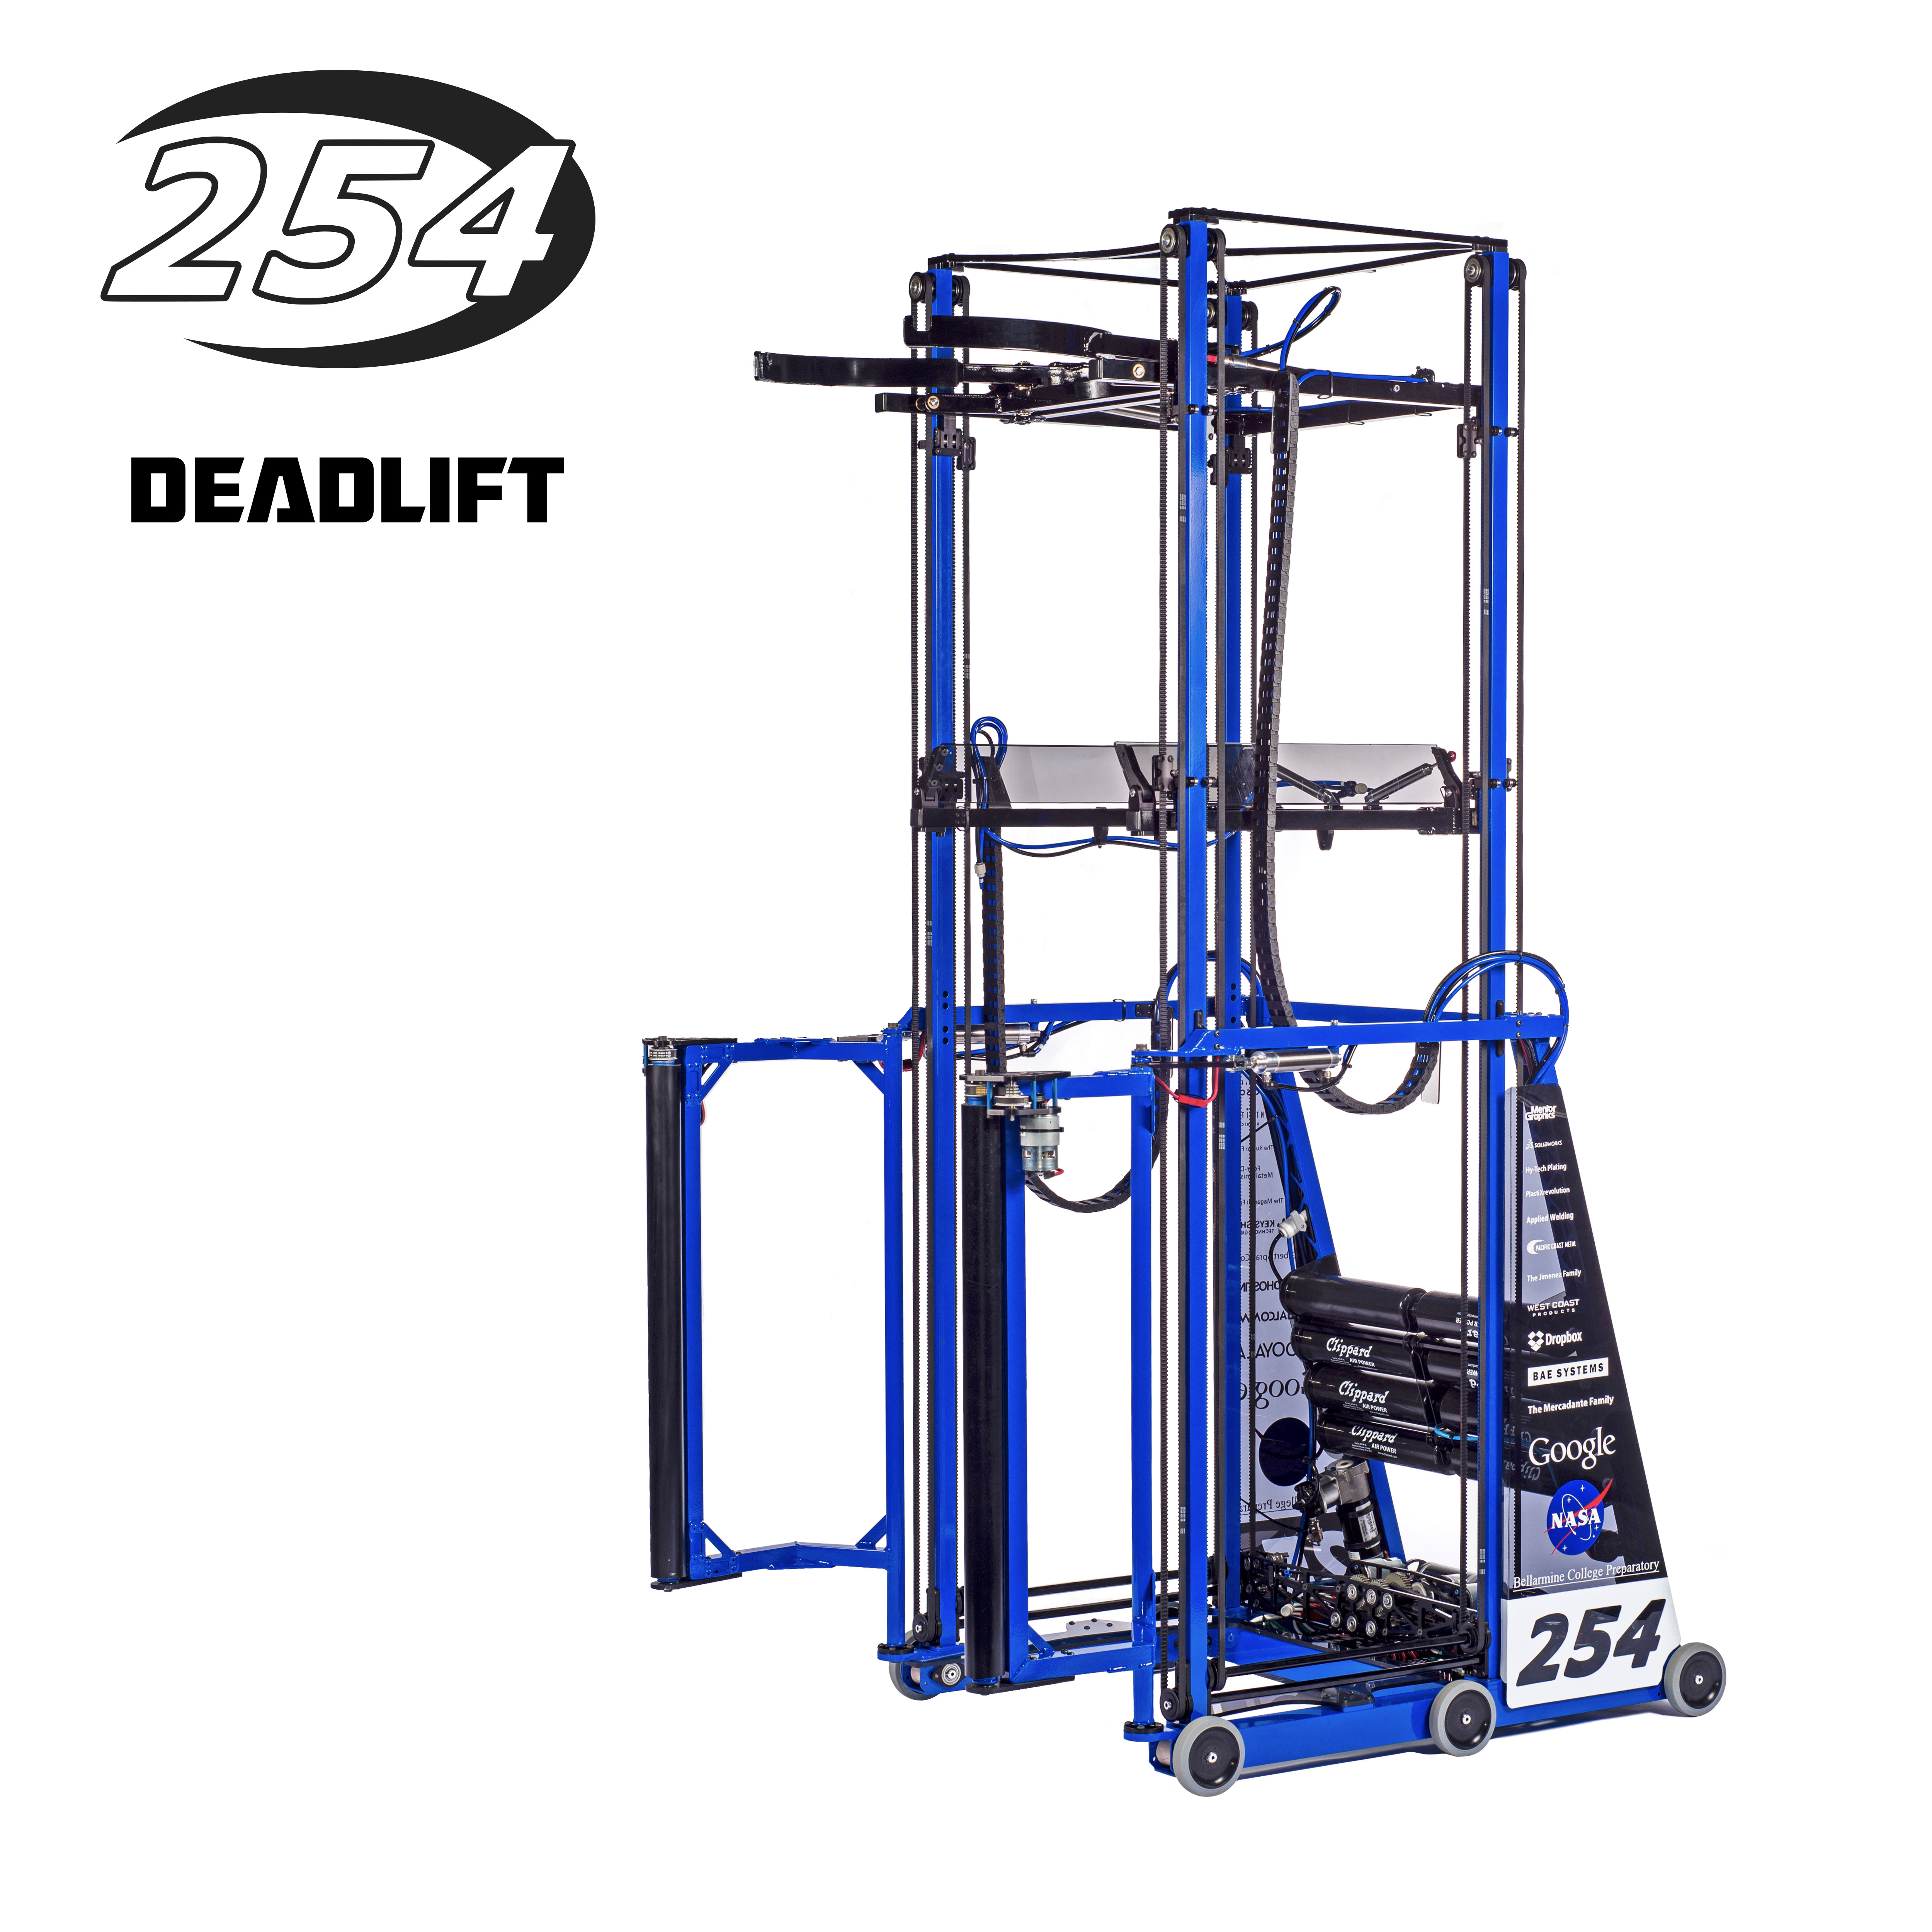 Deadlift, Team 254's 2015 FRC Robot